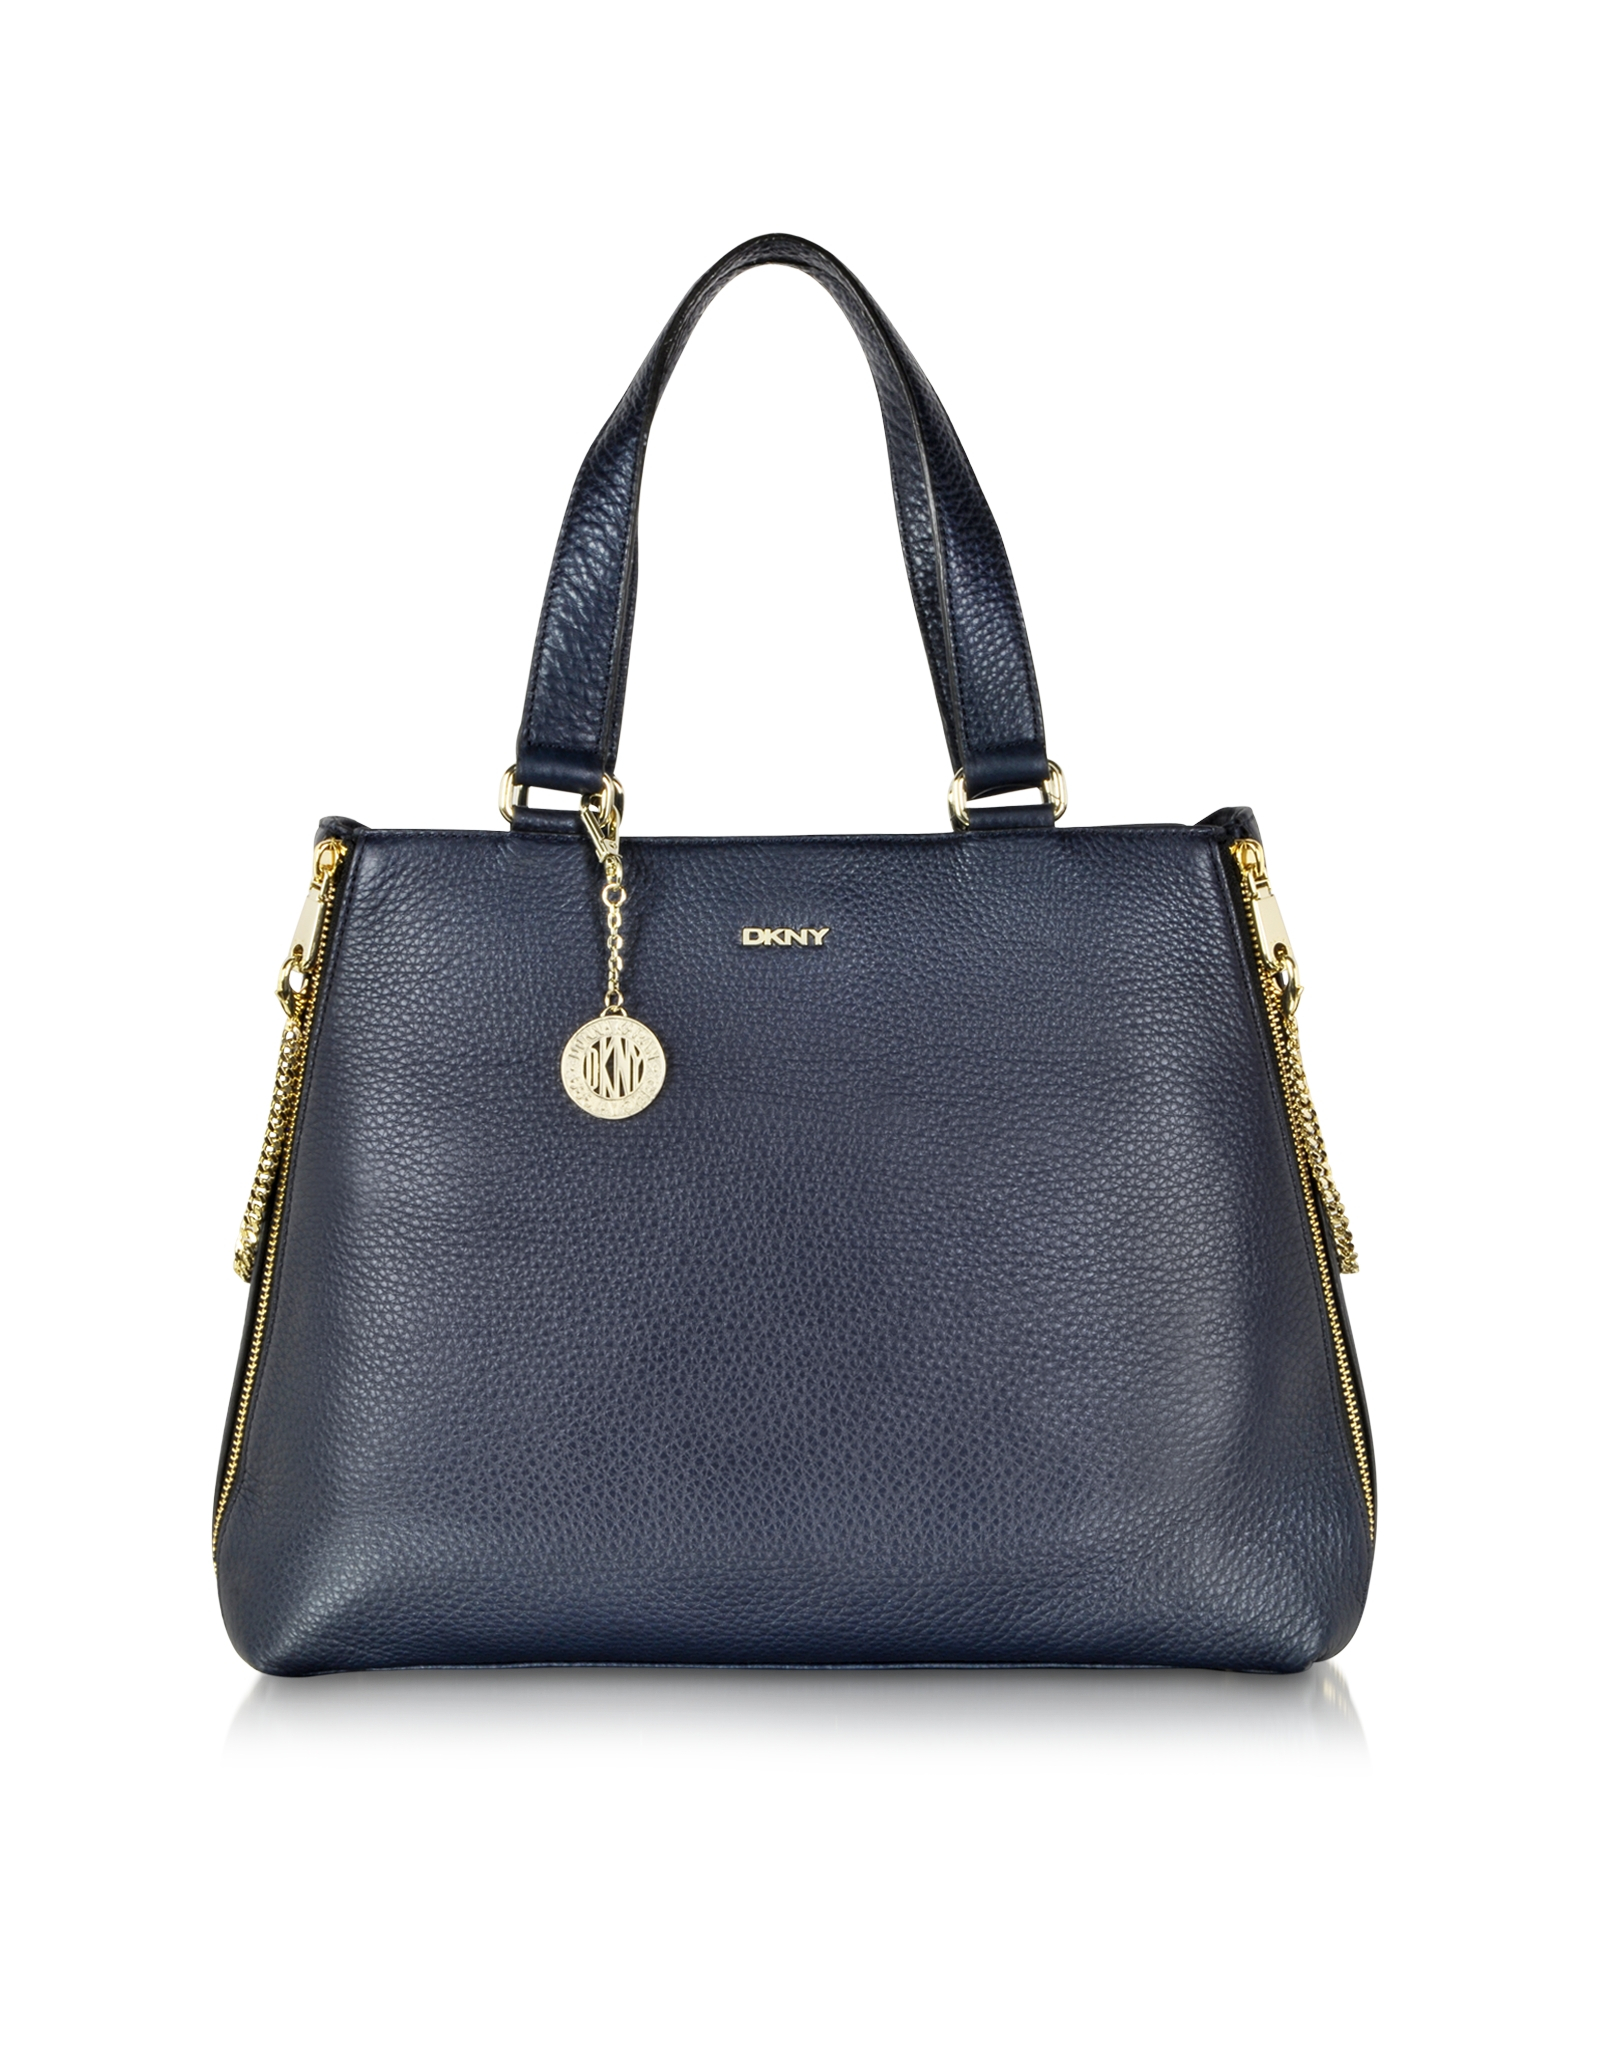 Dkny Tribeca Large Navy Blue Leather Tote Bag in Blue